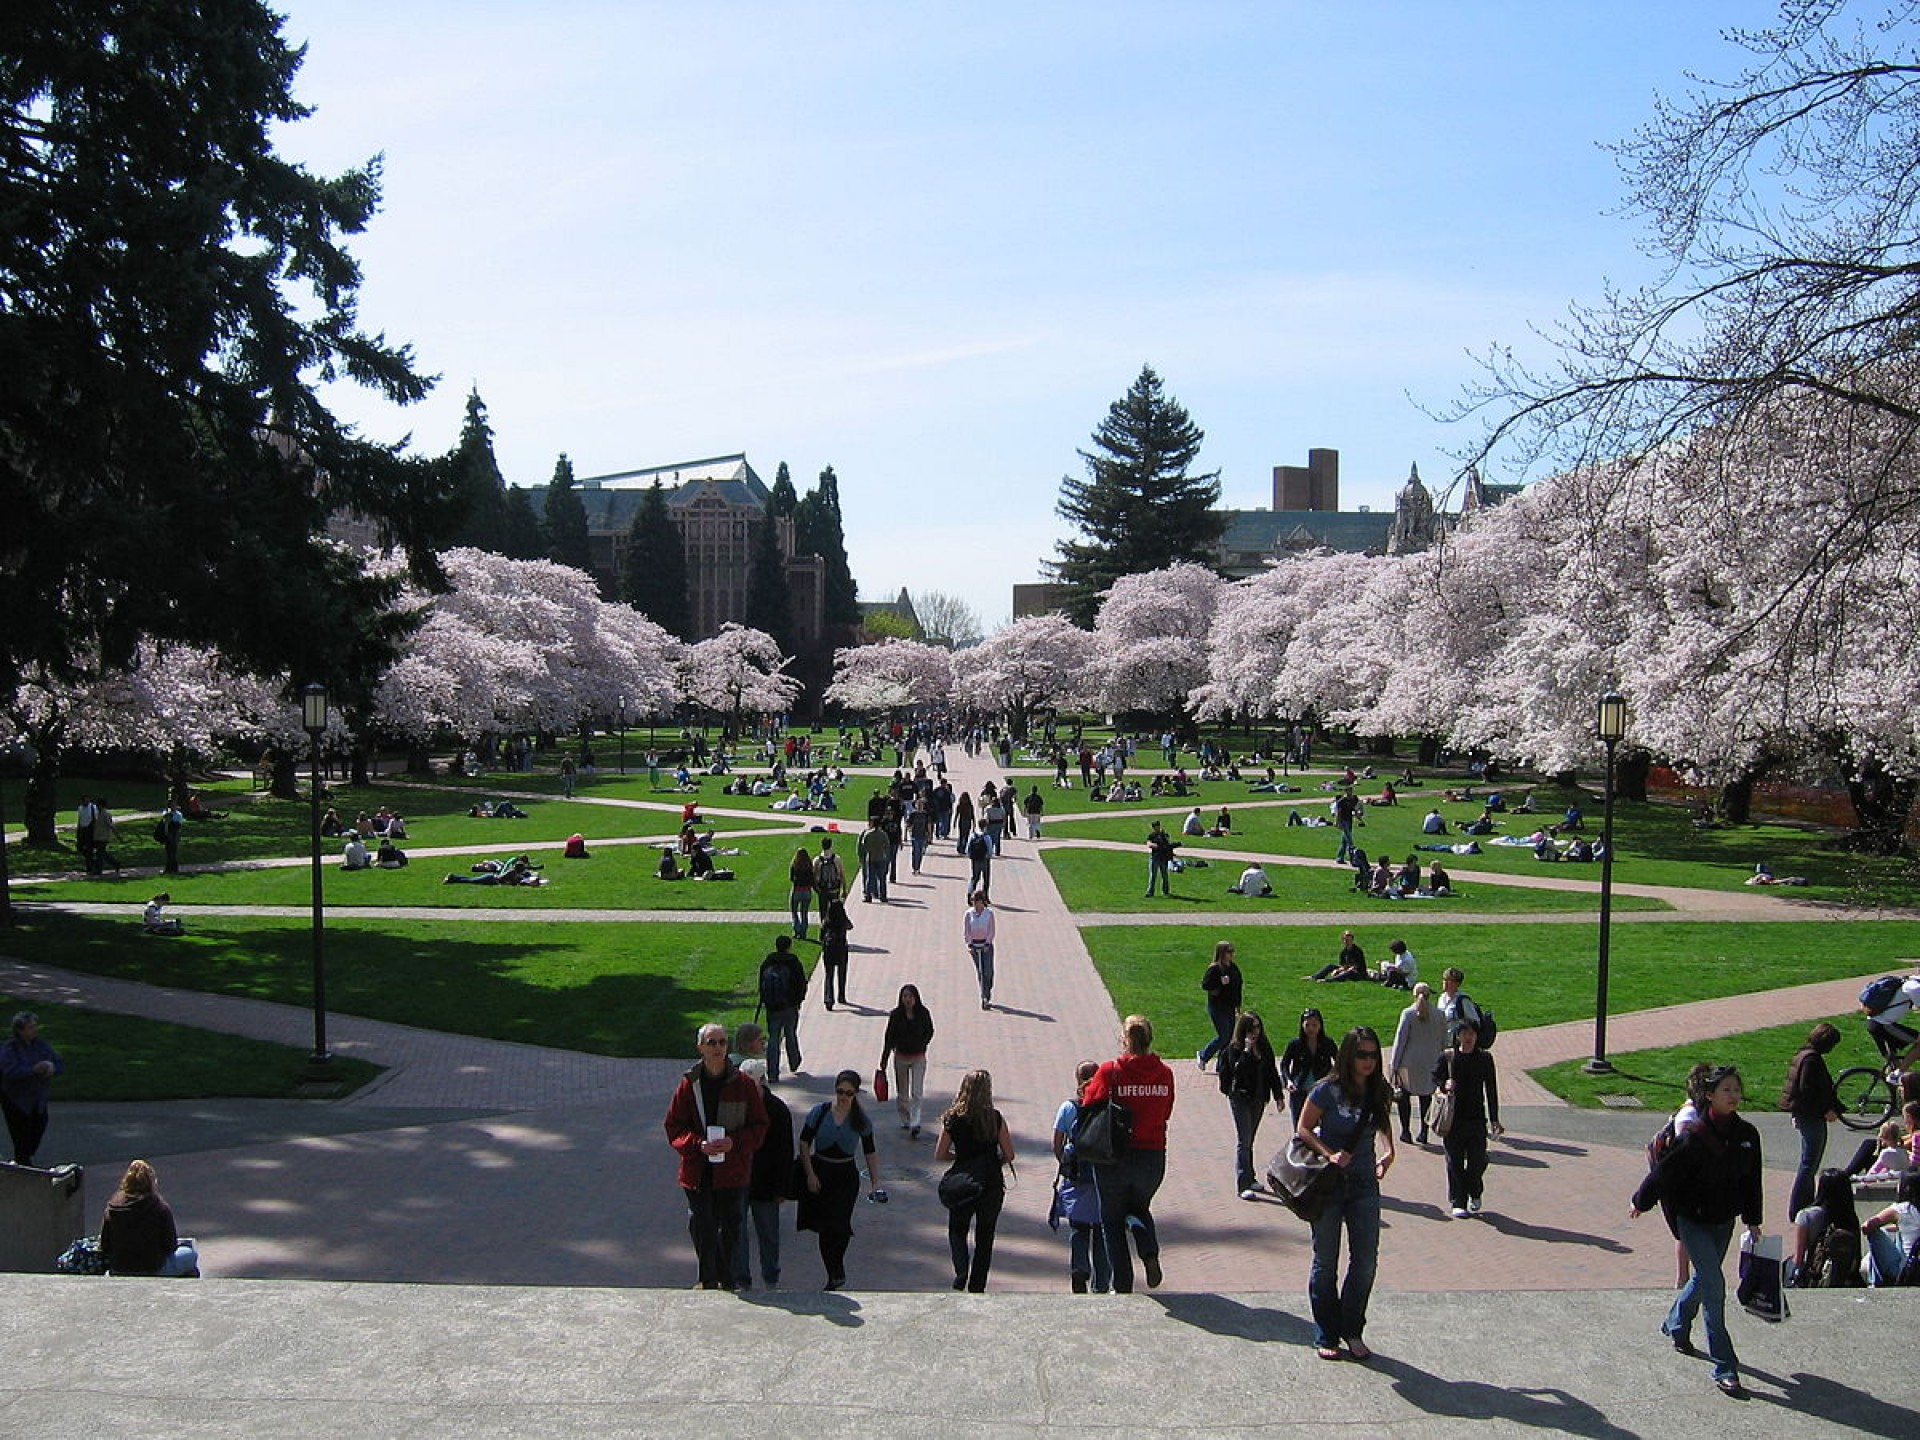 013 1200px University Of Washington Quad2c Spring 2007 Essay Unique Application Examples Prompts Bothell Prompt 1920